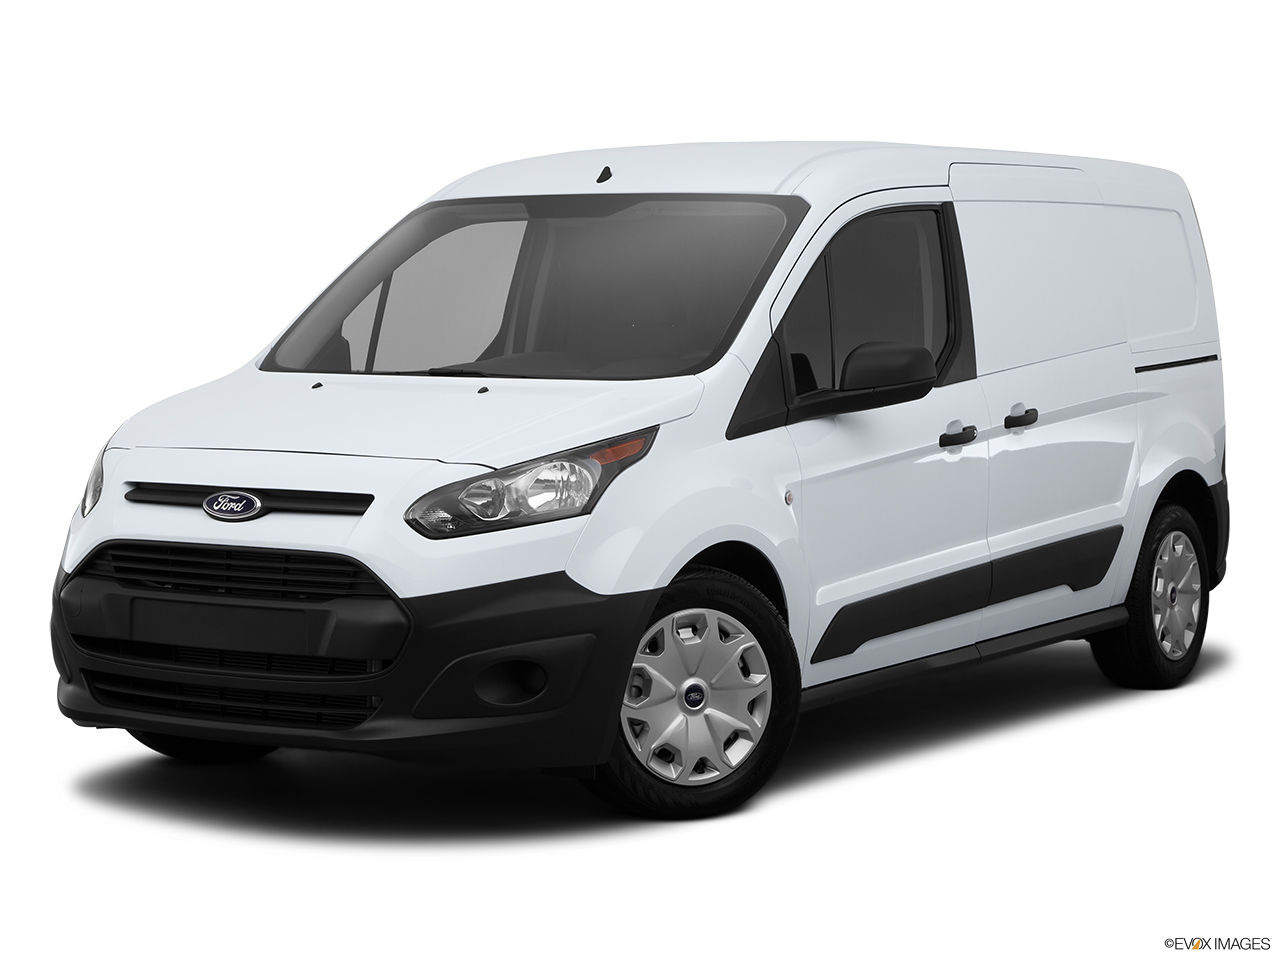 Ford Transit Wagon >> 2014 Ford Transit Connect Wagon Wagon LWB XL - Front angle ...